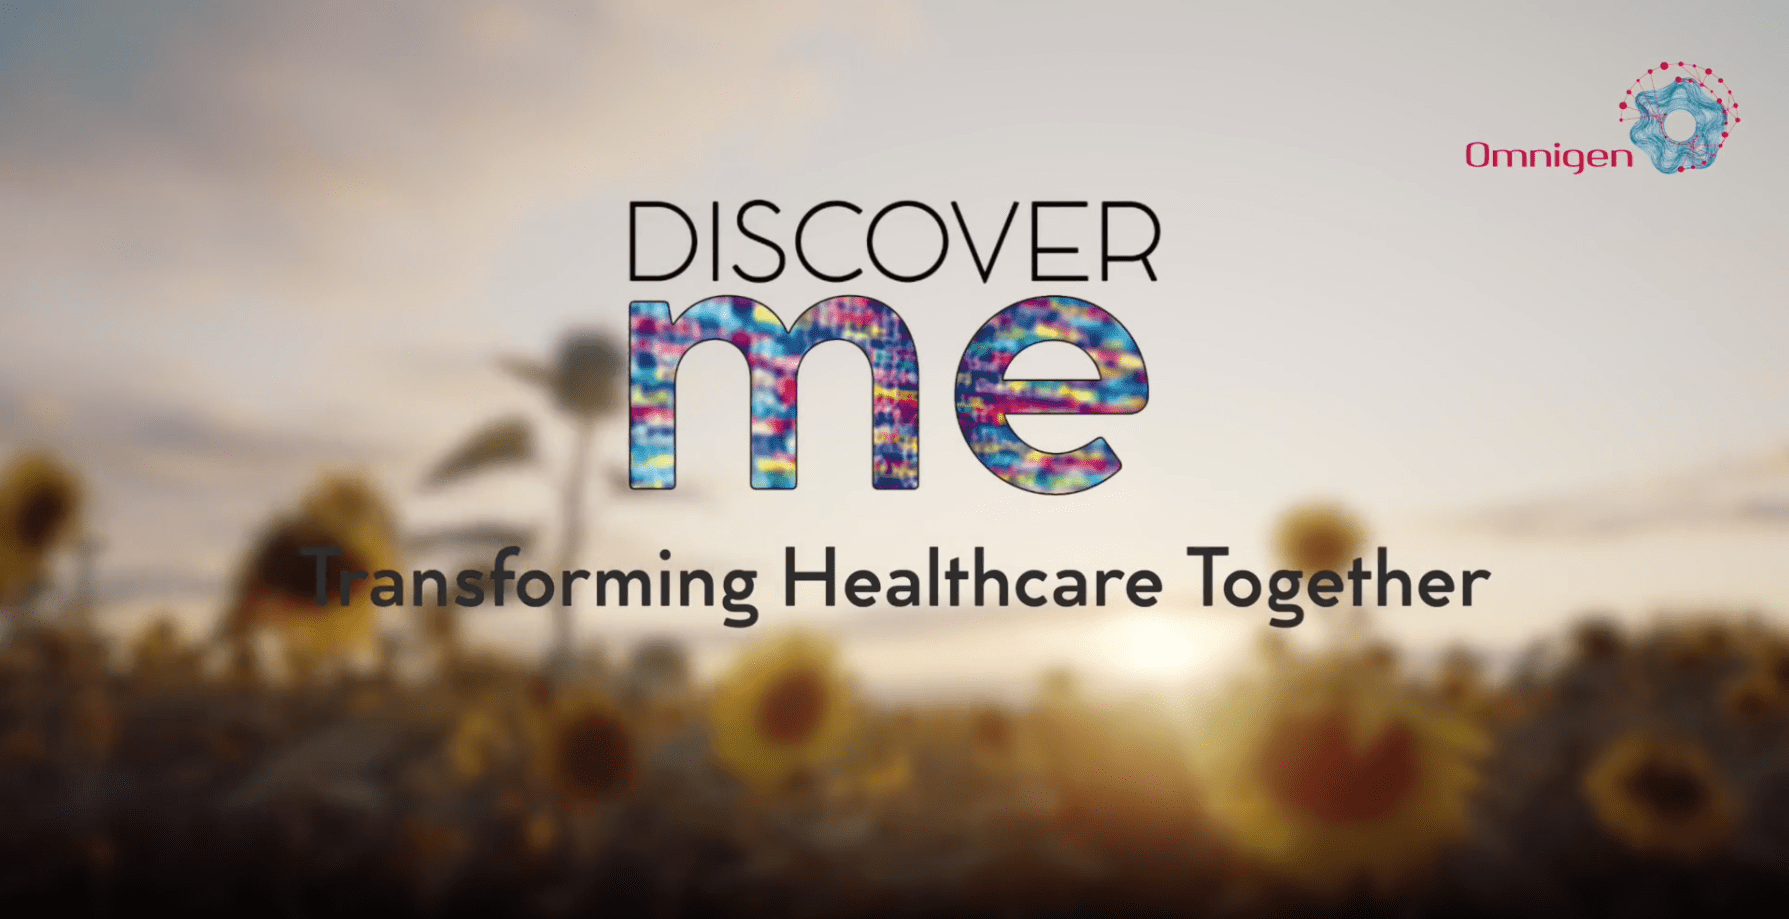 Discover Me - Transforming Health Together